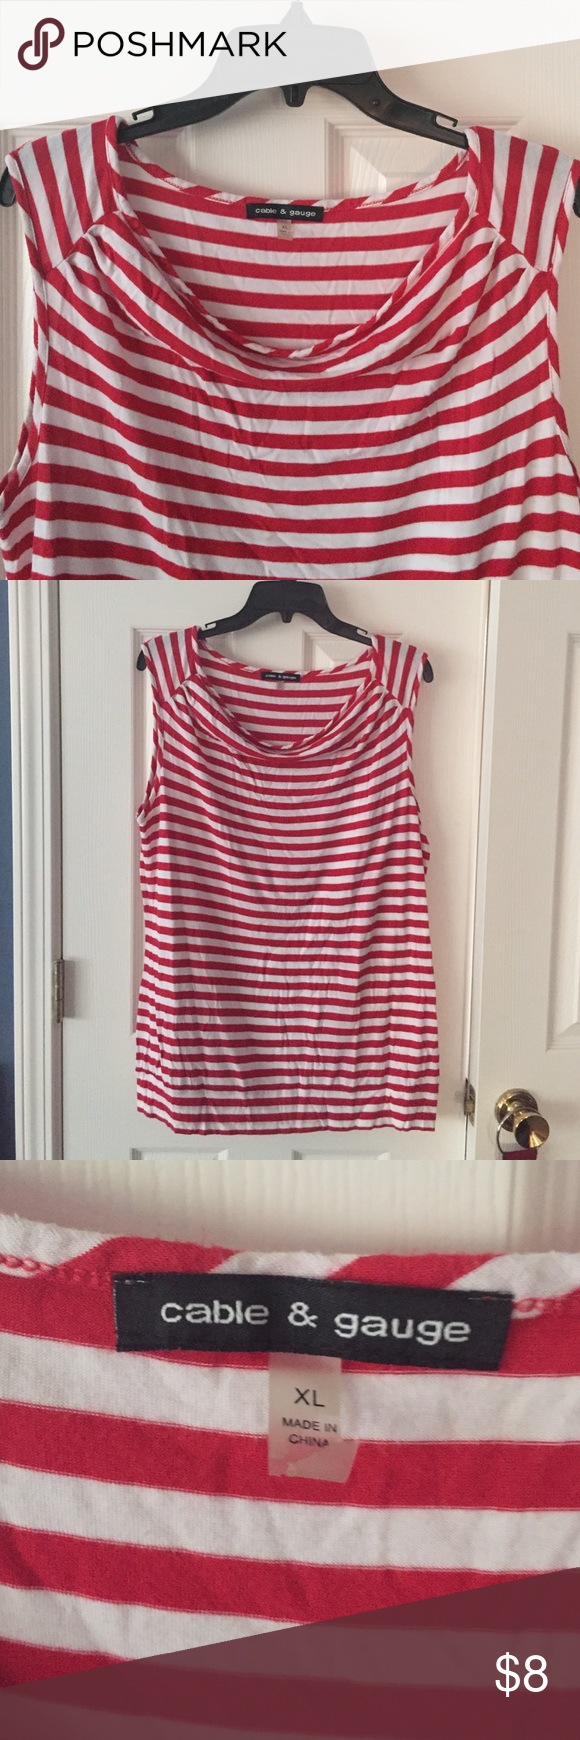 🎉 buy 2, get 1🎉Striped top Red and white striped tee.  Comfortable and great condition.  Cable and Guage size XL.   🎉 add freebie choice in comments!🎉 any $7 or less item! 🎉 Cable & Gauge Tops Tank Tops